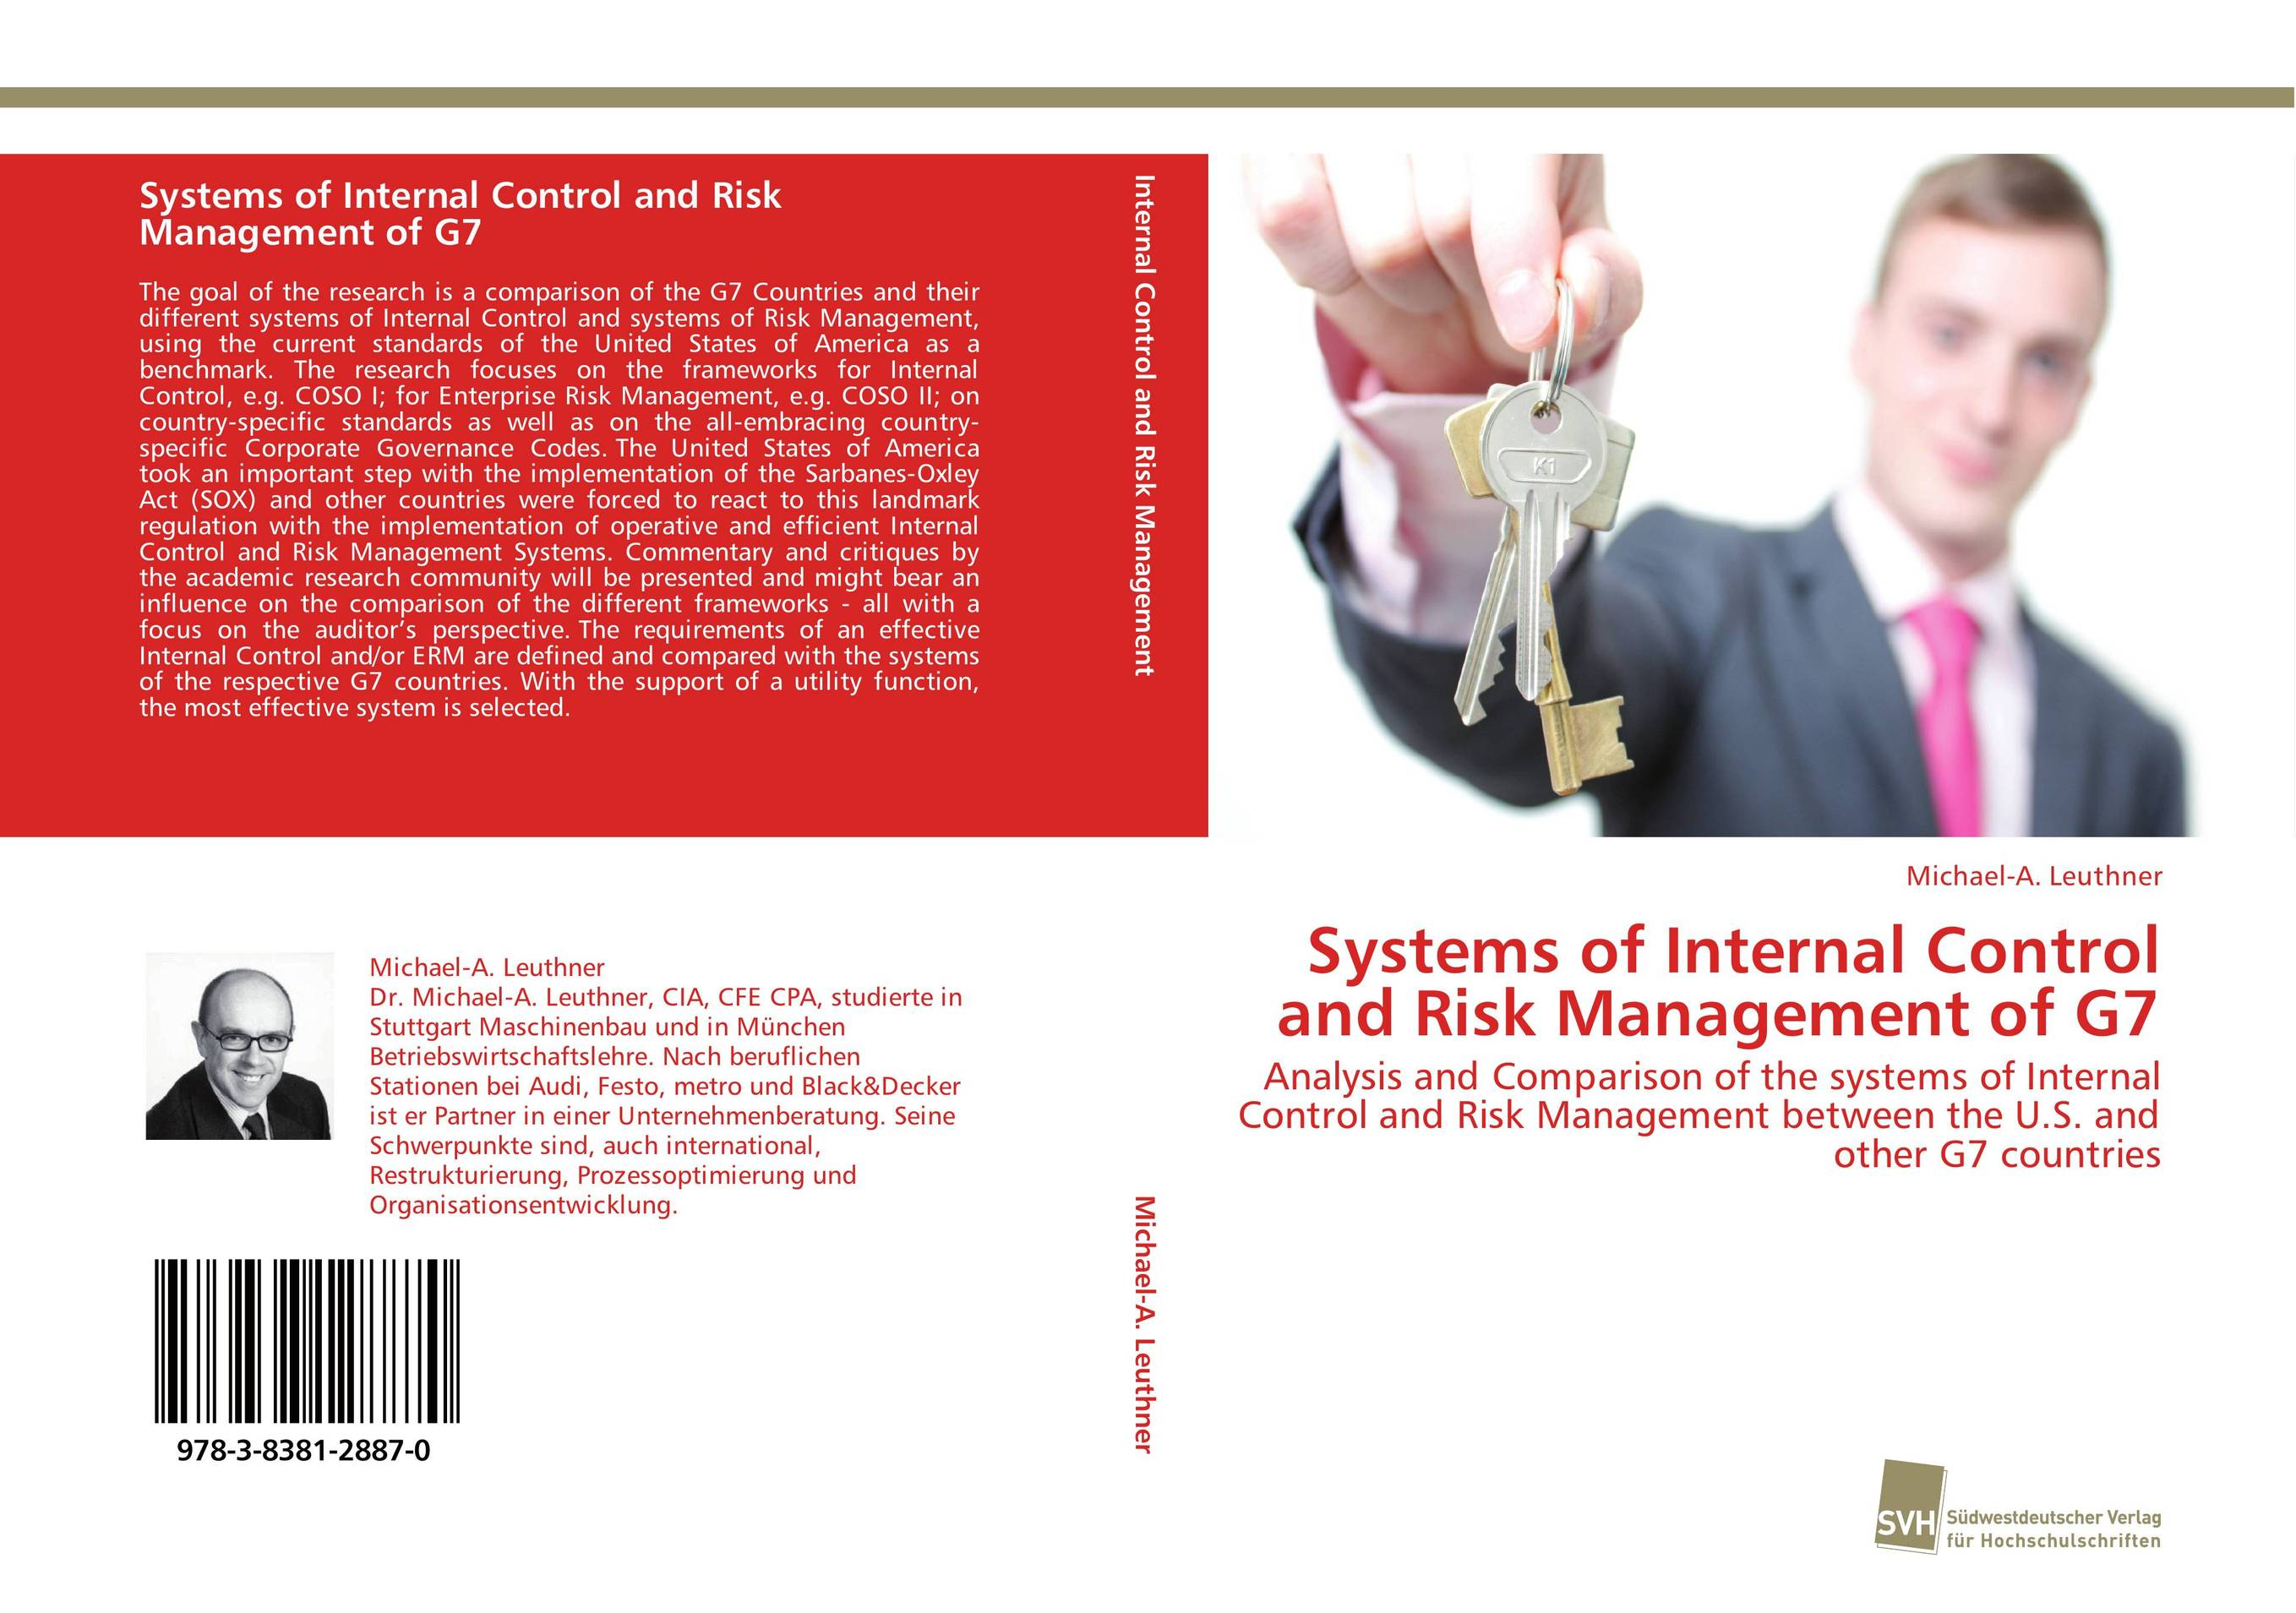 Systems of Internal Control and Risk Management of G7 evaluation of the internal control practices